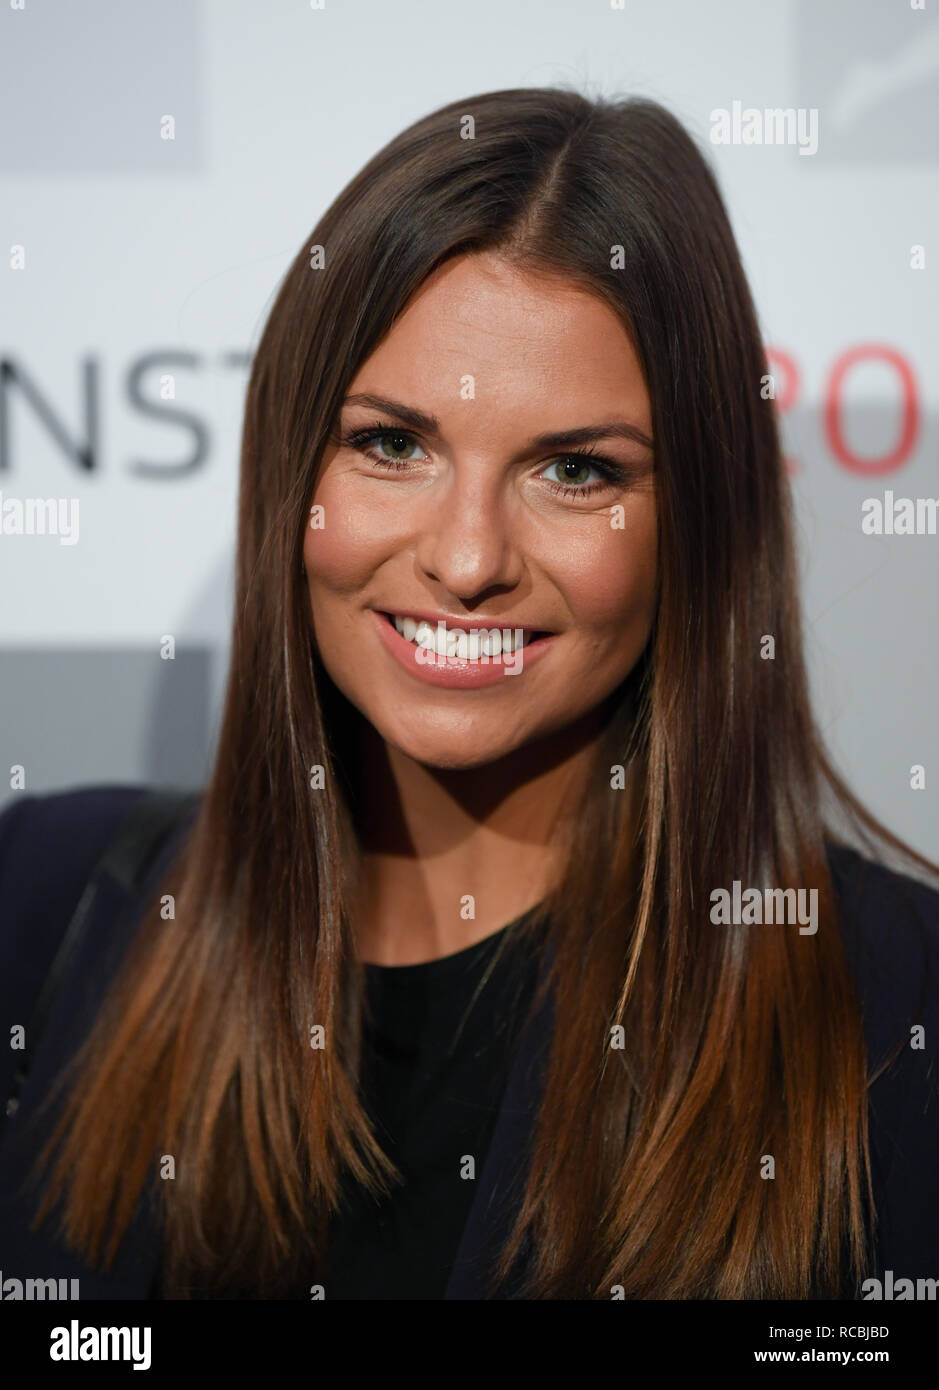 Frankfurt, Germany. 15 January 2019, Television presenter Laura Wontorra comes to the New Year's reception of the German Football League (DFL). Photo: Arne Dedert/dpa Credit: dpa picture alliance/Alamy Live News - Stock Image